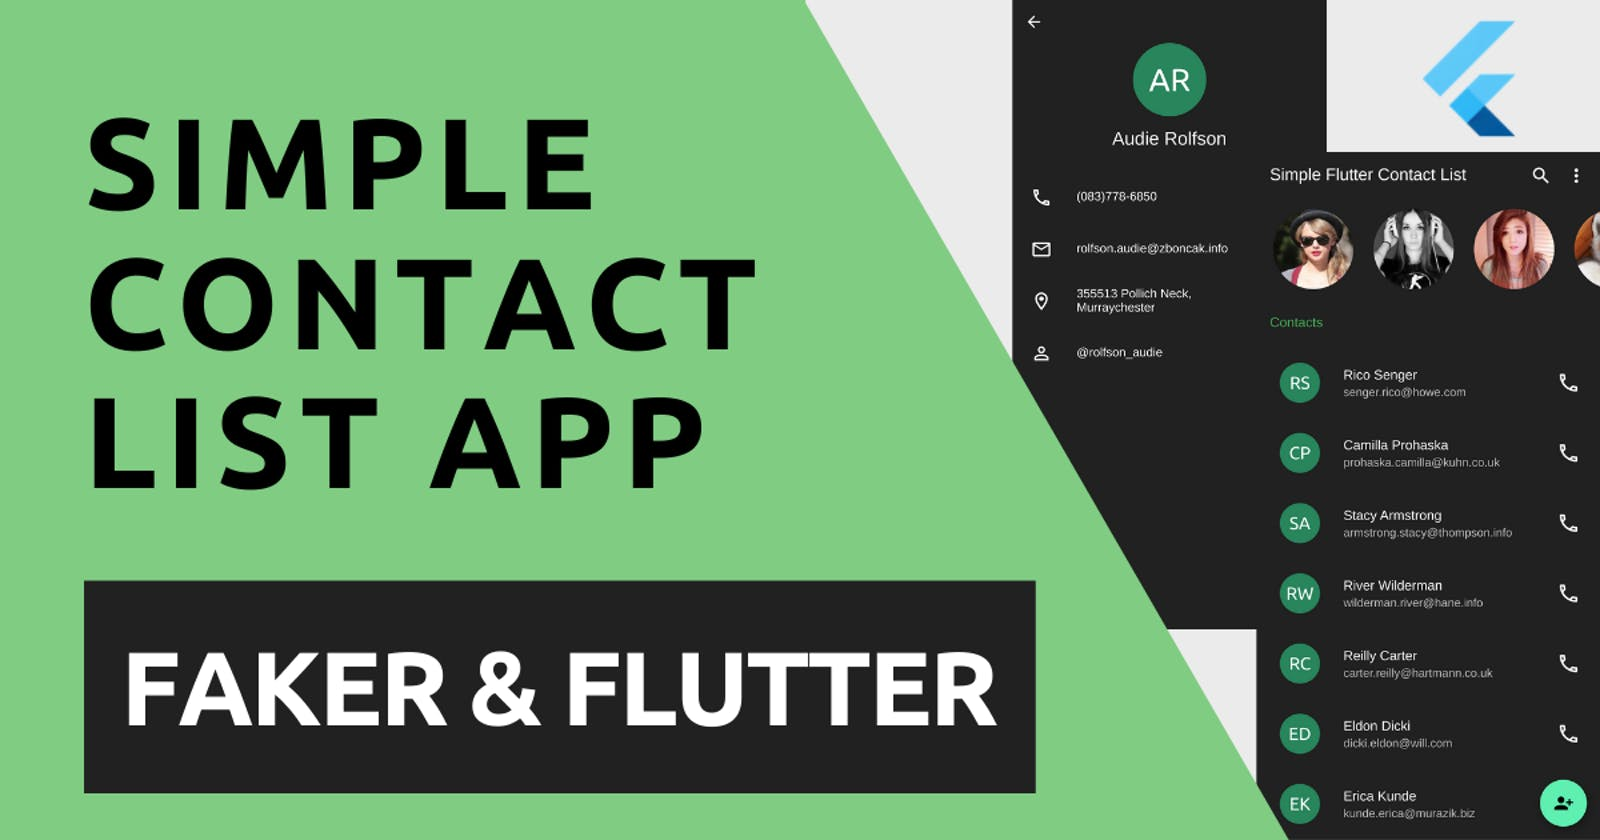 Create a Simple Contact App with Faker & Flutter